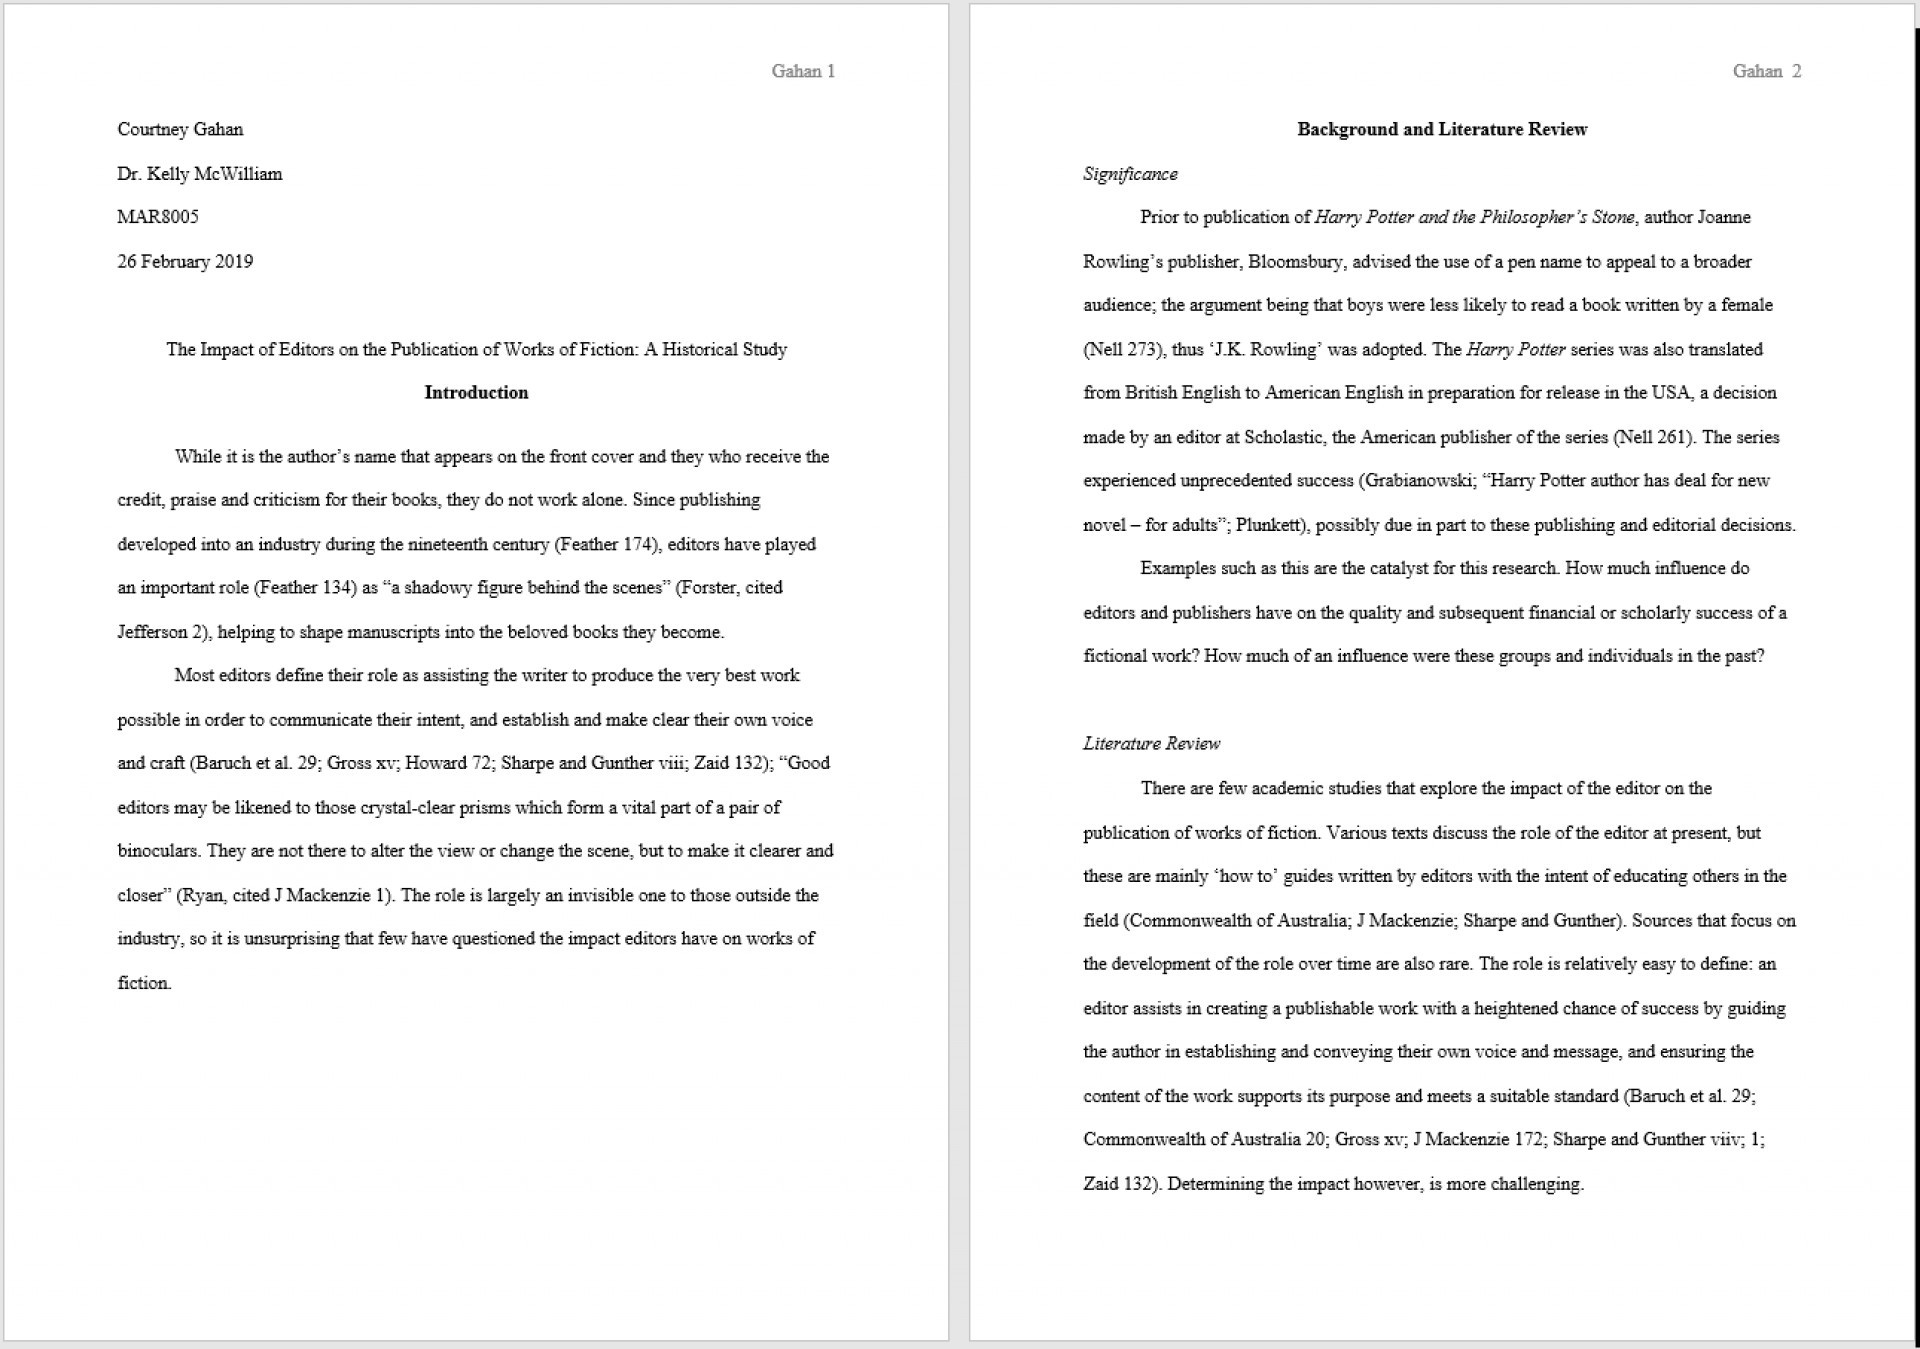 016 Research Paper Mla Sample How To Cite Book In Rare A Format 1920